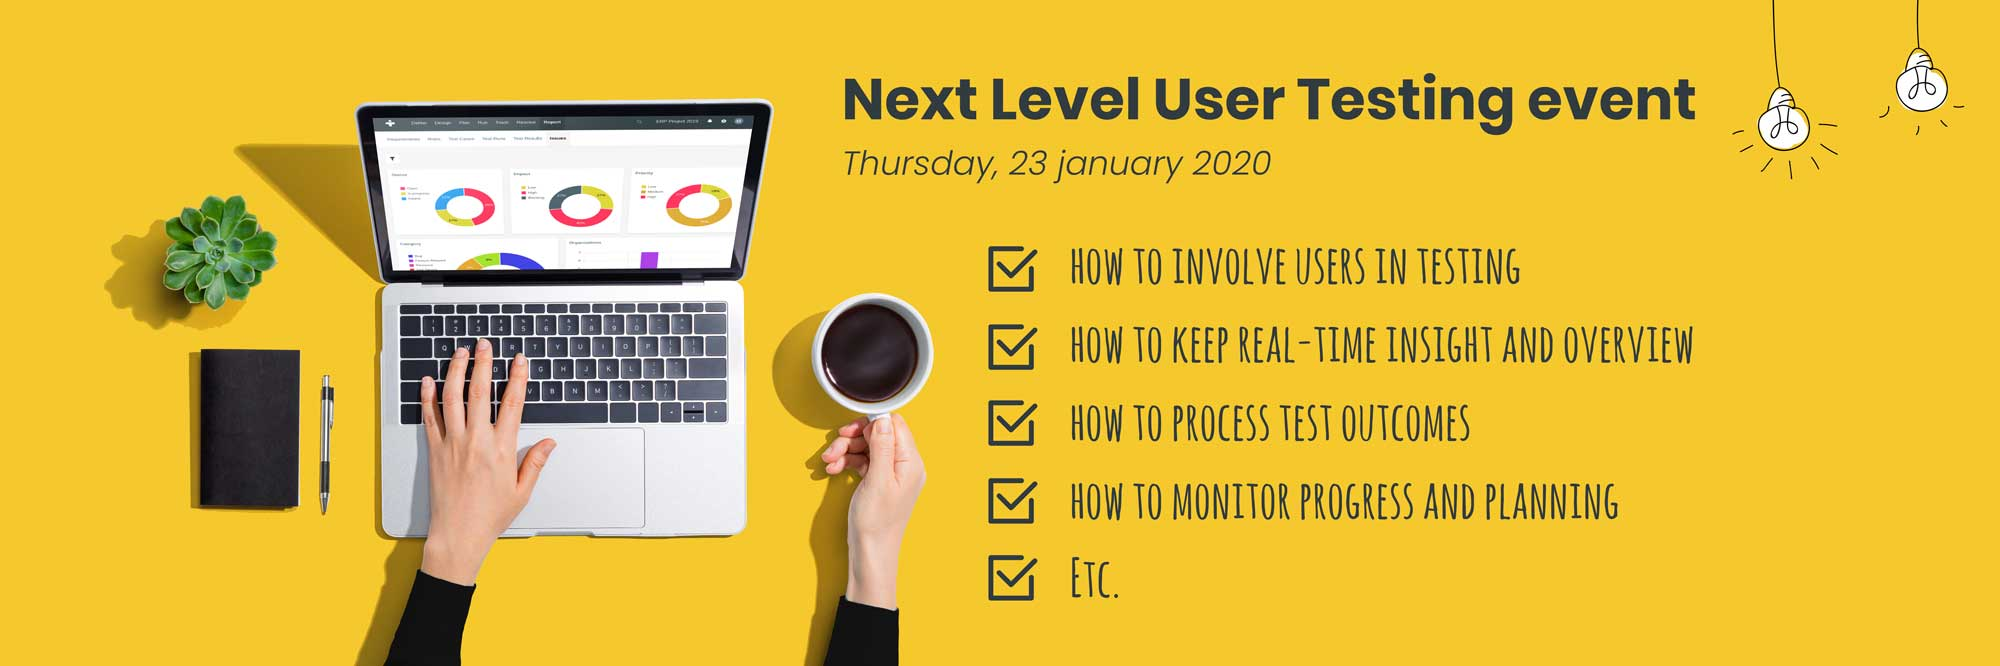 Take user testing to the next level in 2020: join our free webinar